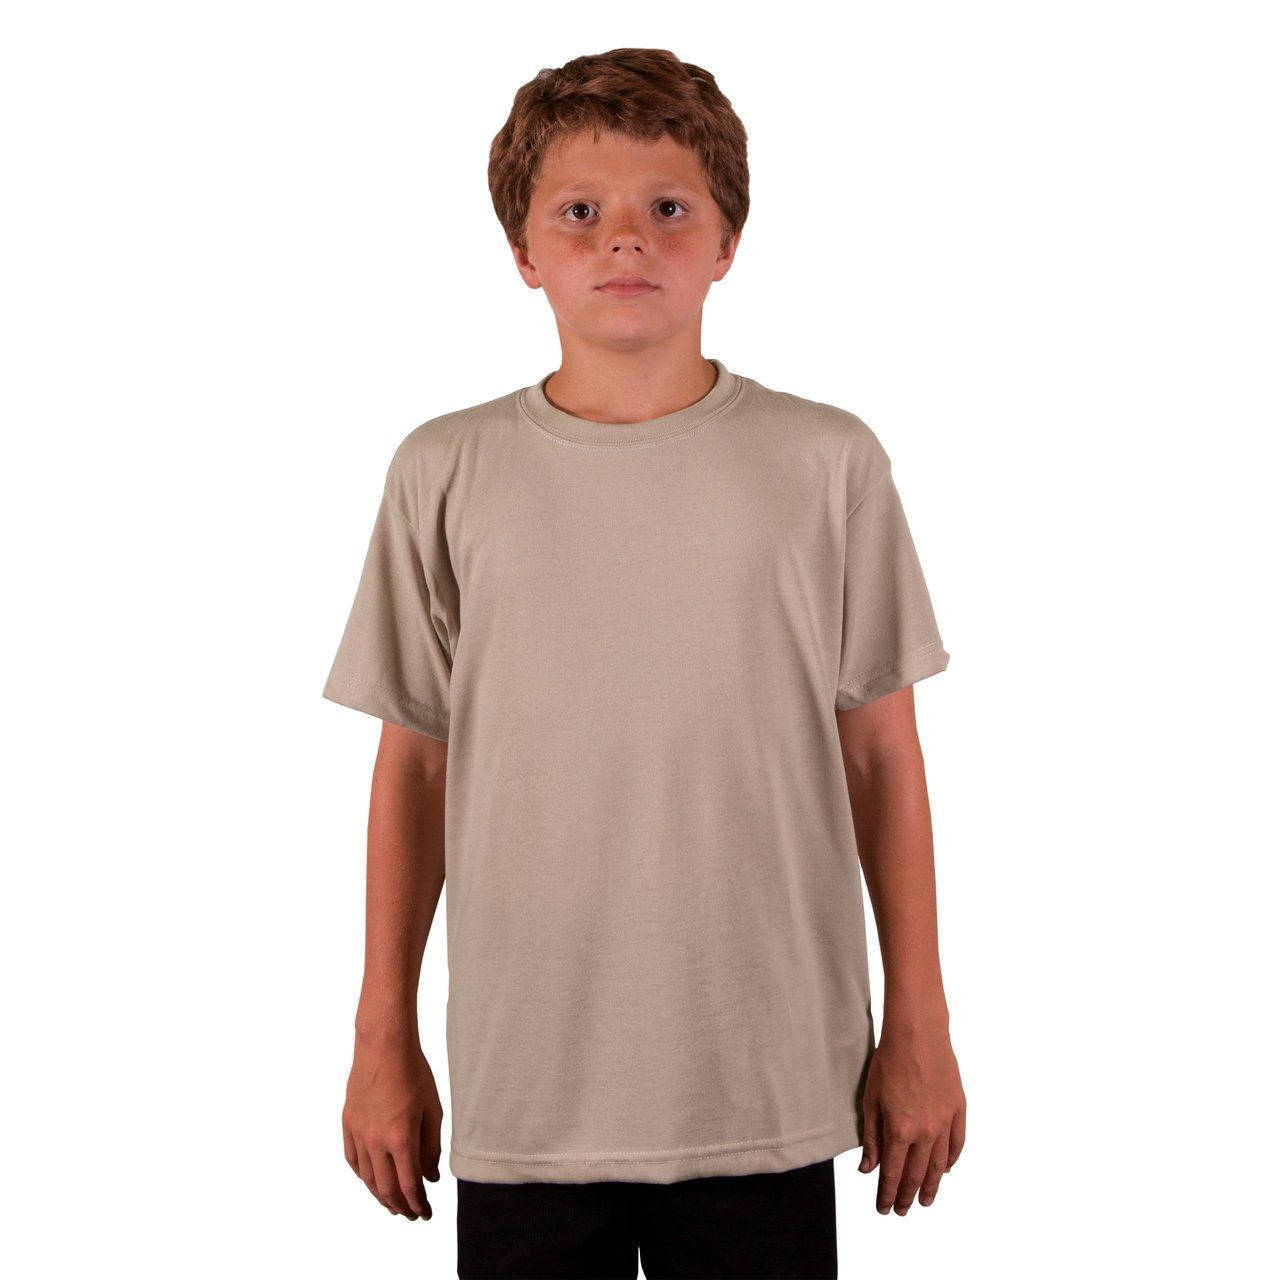 A3SJBBSD Youth Basic Performance T-Shirt - Sand